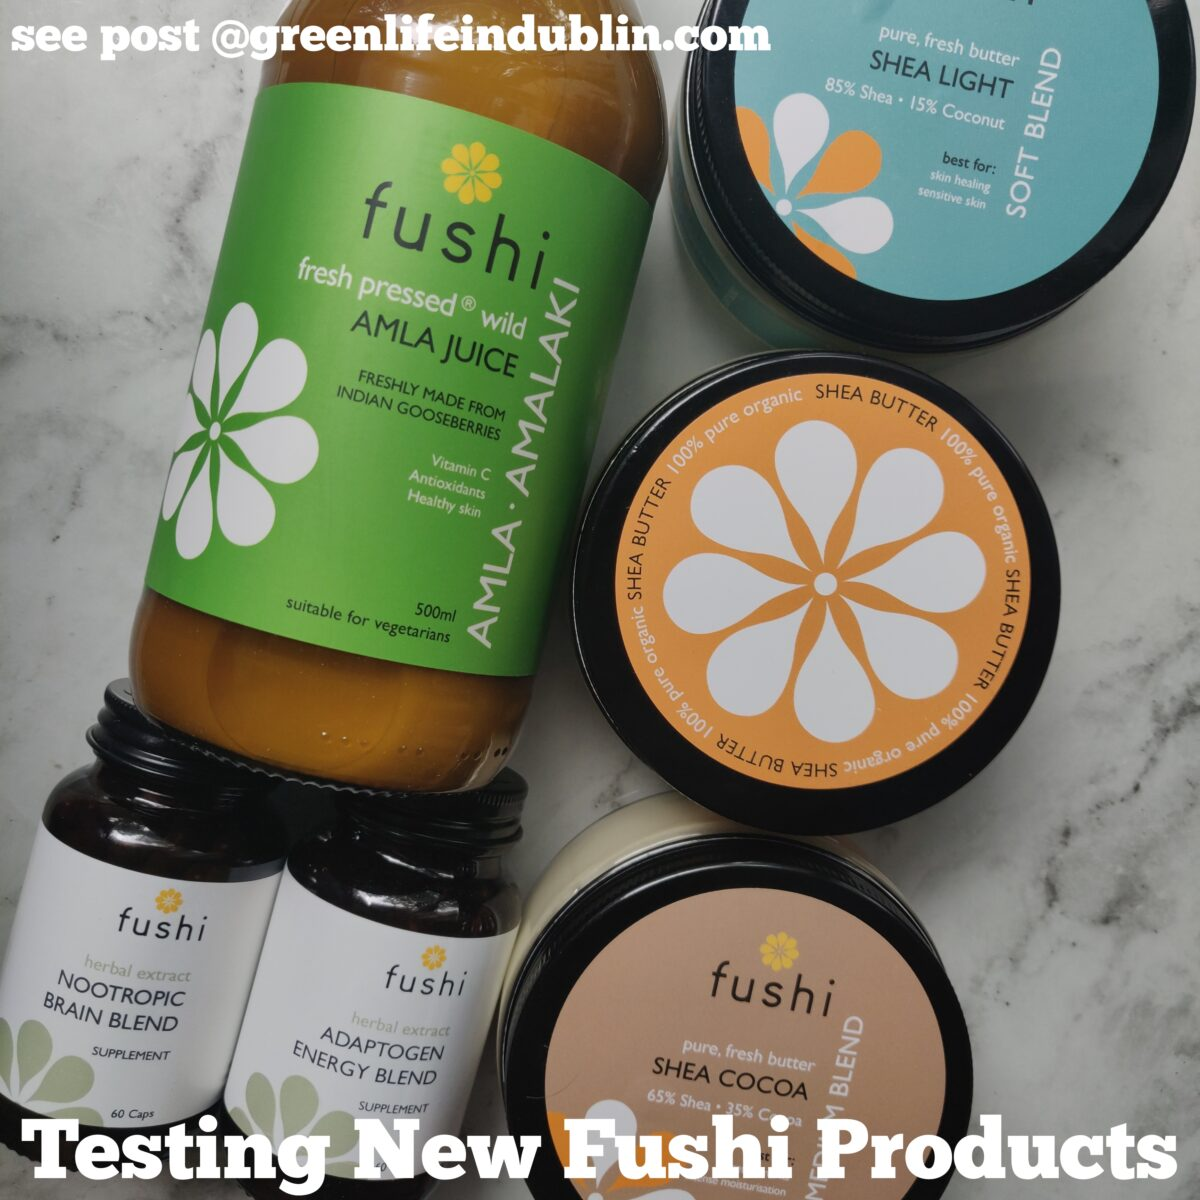 Testing new Fushi goodies – new Shea butter blends, Amla juice, supplements